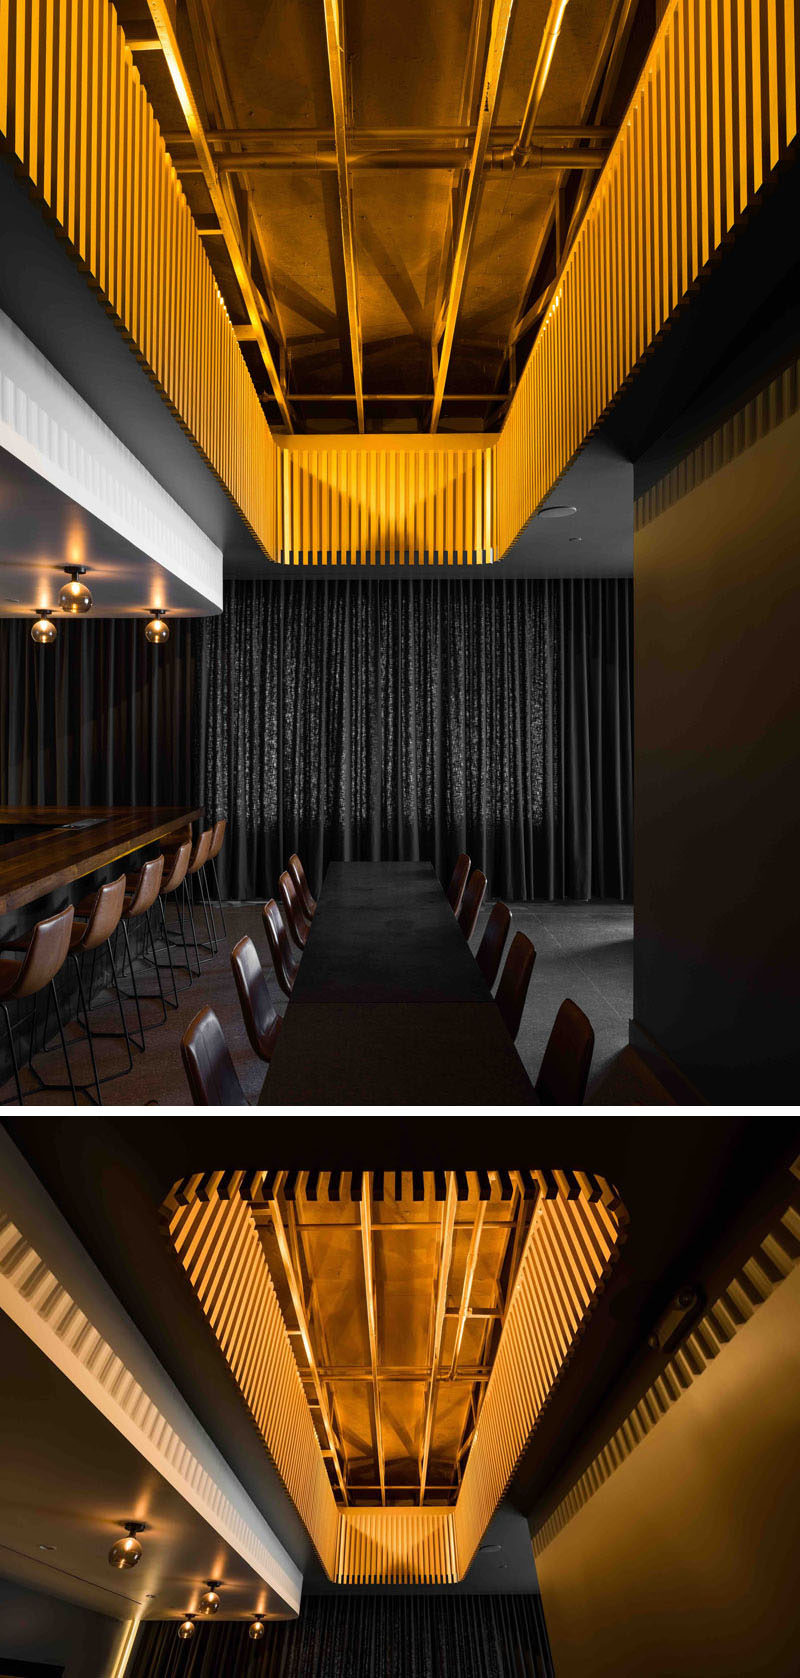 The focal point of this modern and luxurious cocktail bar is the gold painted trusses in a central void that acts like a chandelier centered above a large communal table.